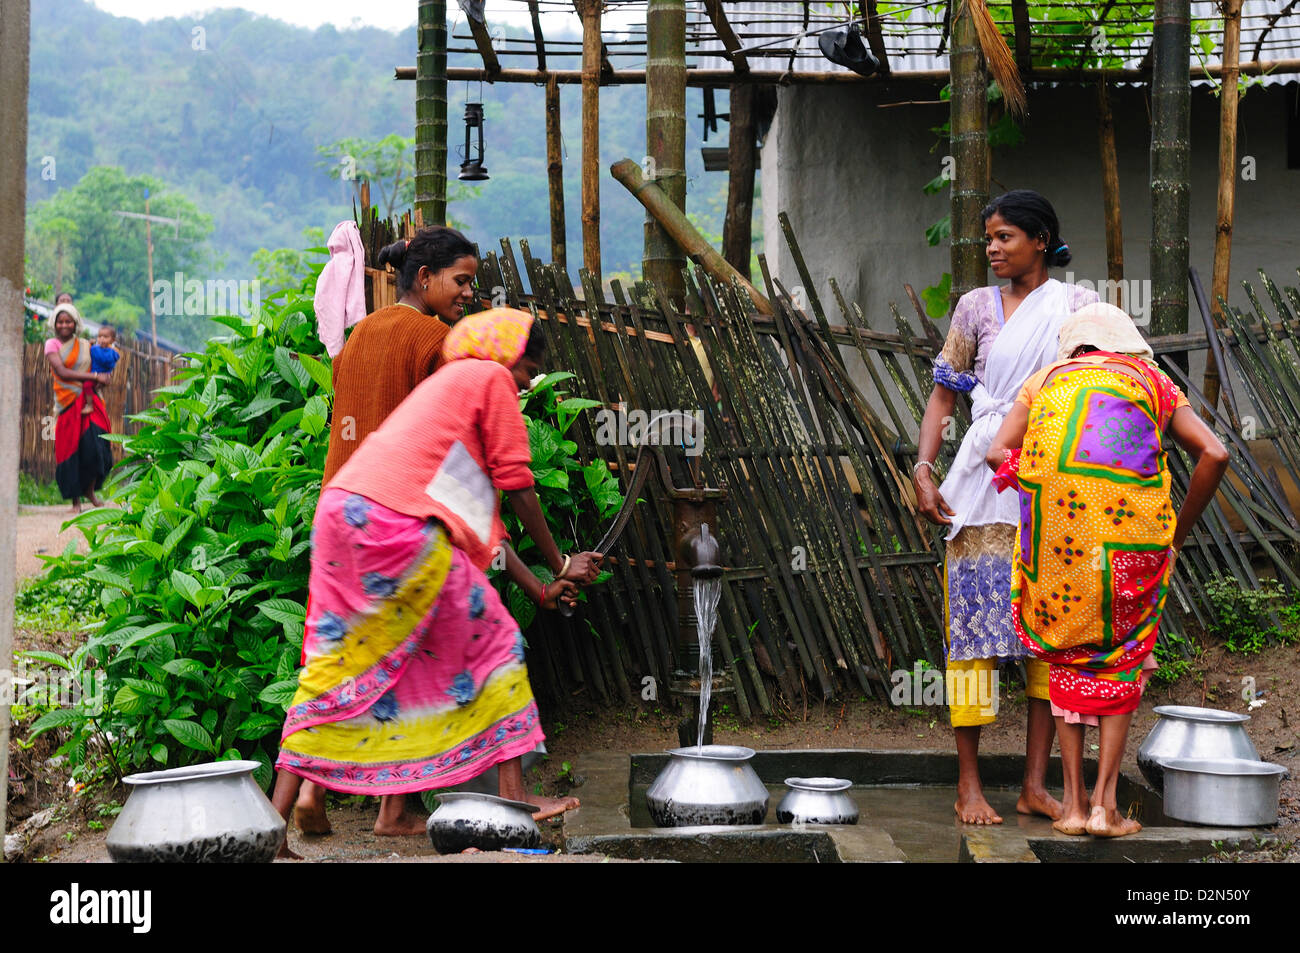 Women pumping water from a hand pump, Jorhat, Assam, India, Asia - Stock Image